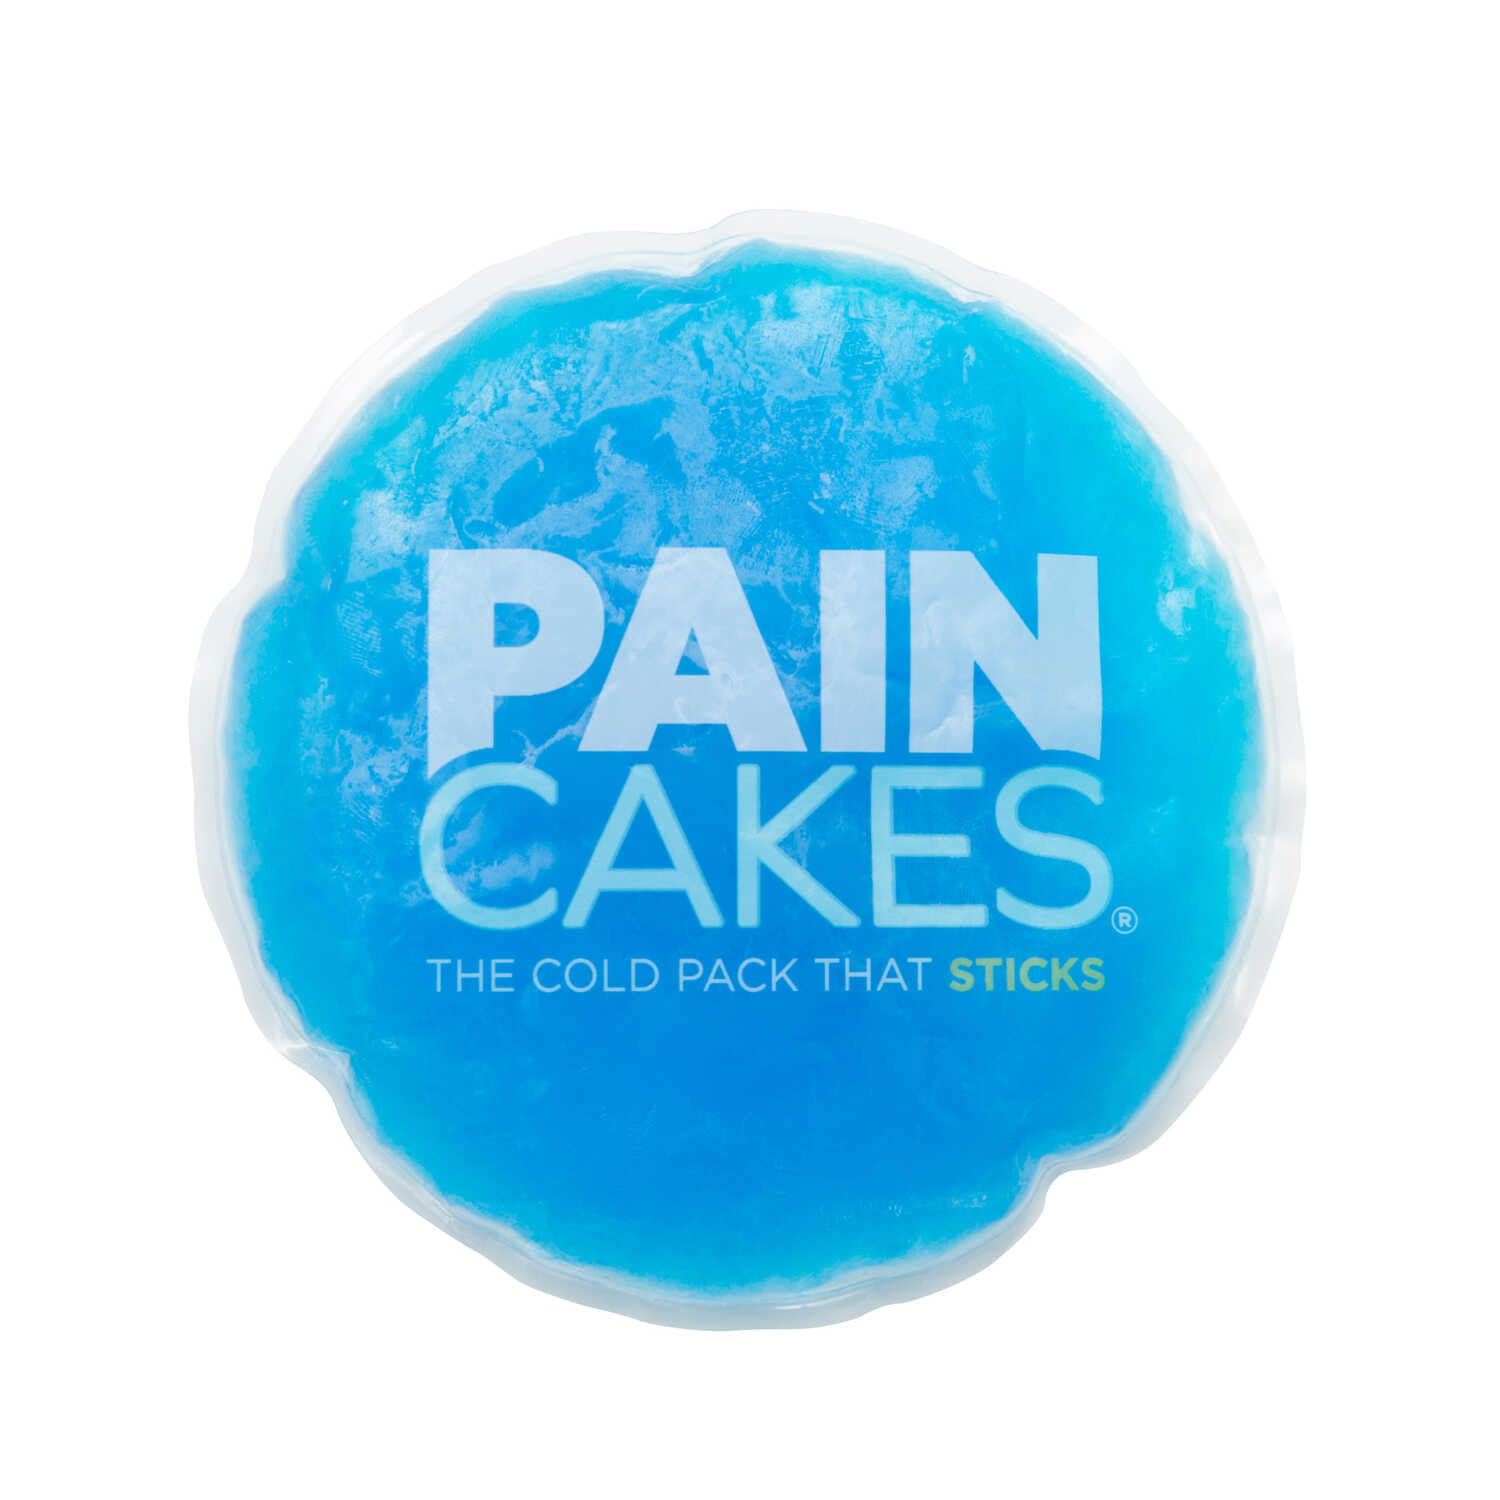 PAINCAKES  Stick and Stay  Ice Pack  Glycerin/Water  1 pk